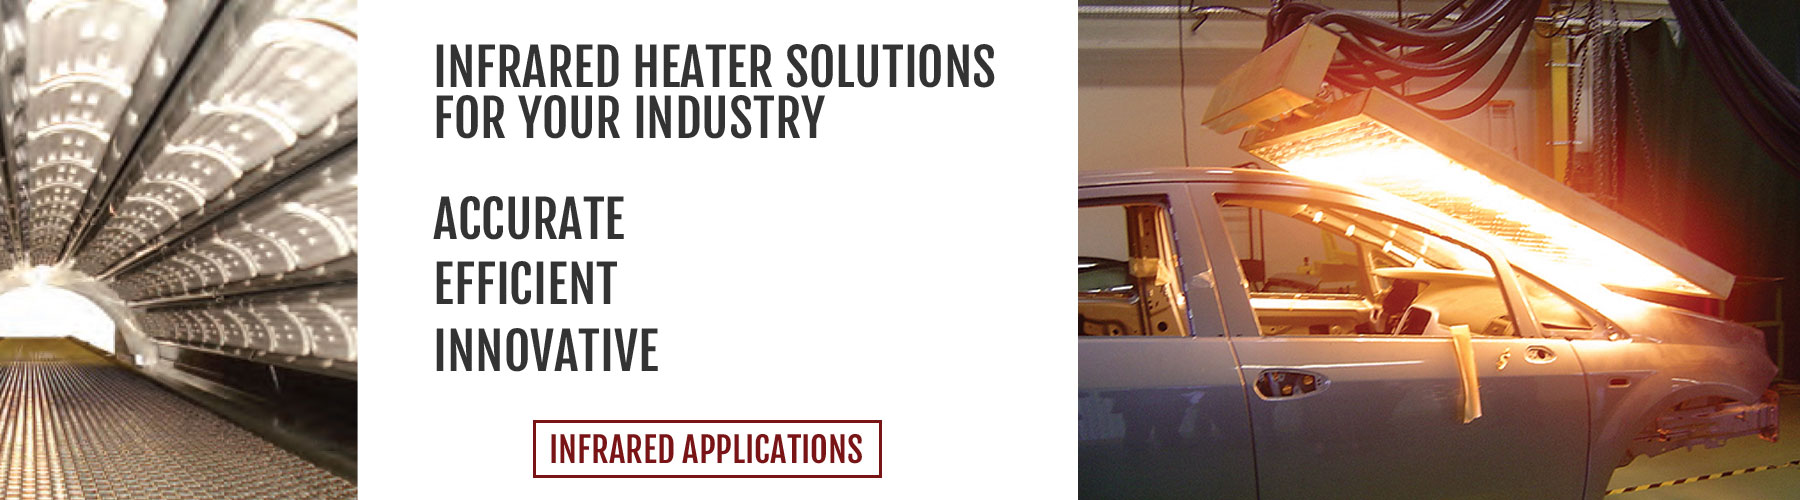 Infrared Heater Solutions